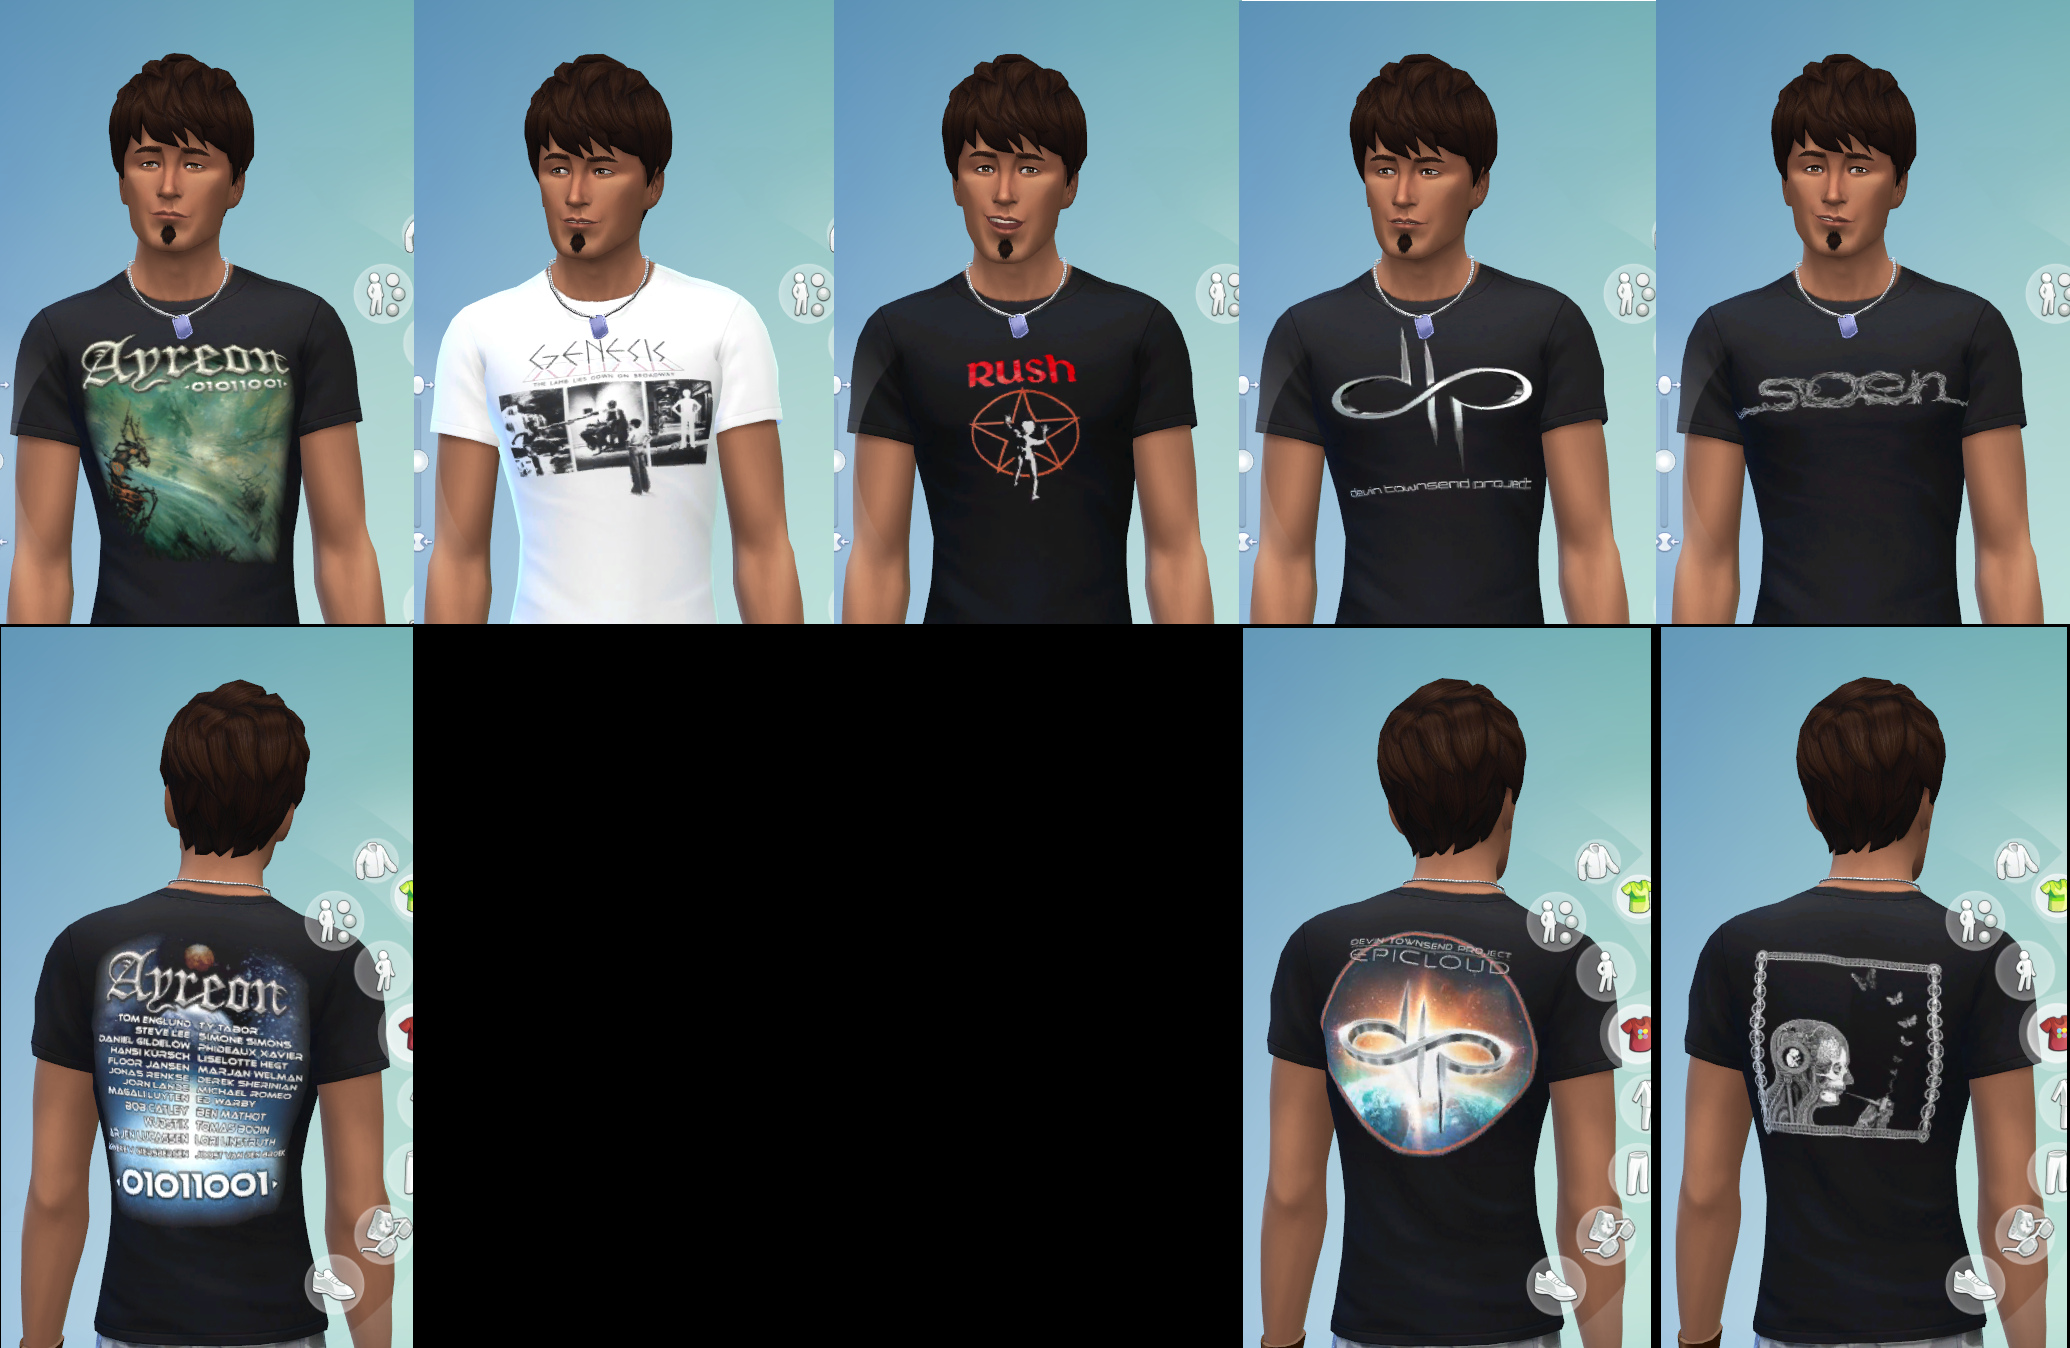 Mod The Sims Progrock T Shirts For Teen Elder Male Female Sims